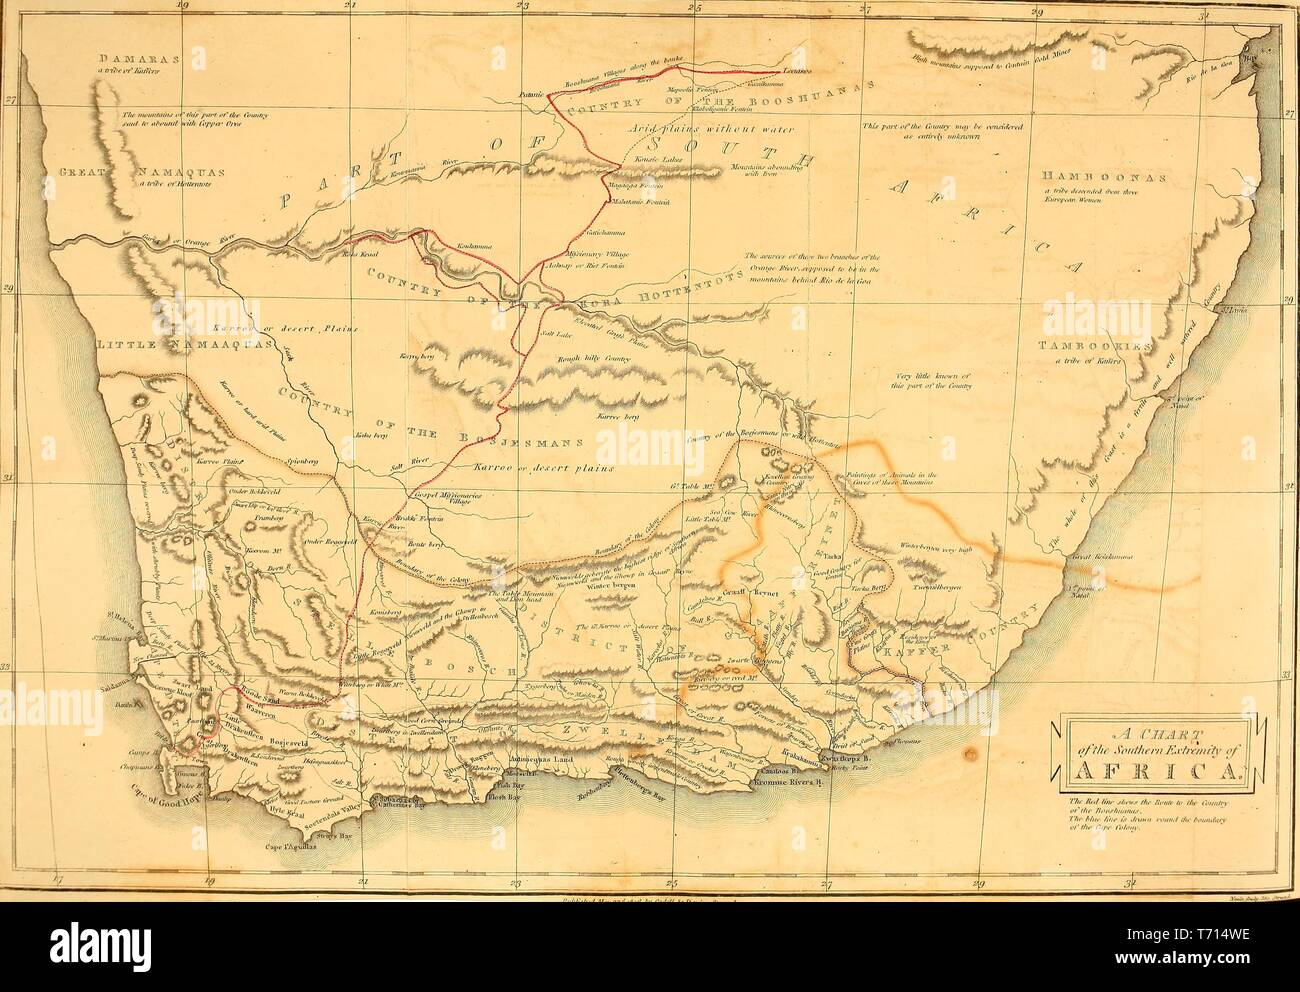 Illustrated map of southern Africa, from the book 'A voyage to Cochinchina' by Sir John Barrow, 1825. Courtesy Internet Archive. () - Stock Image